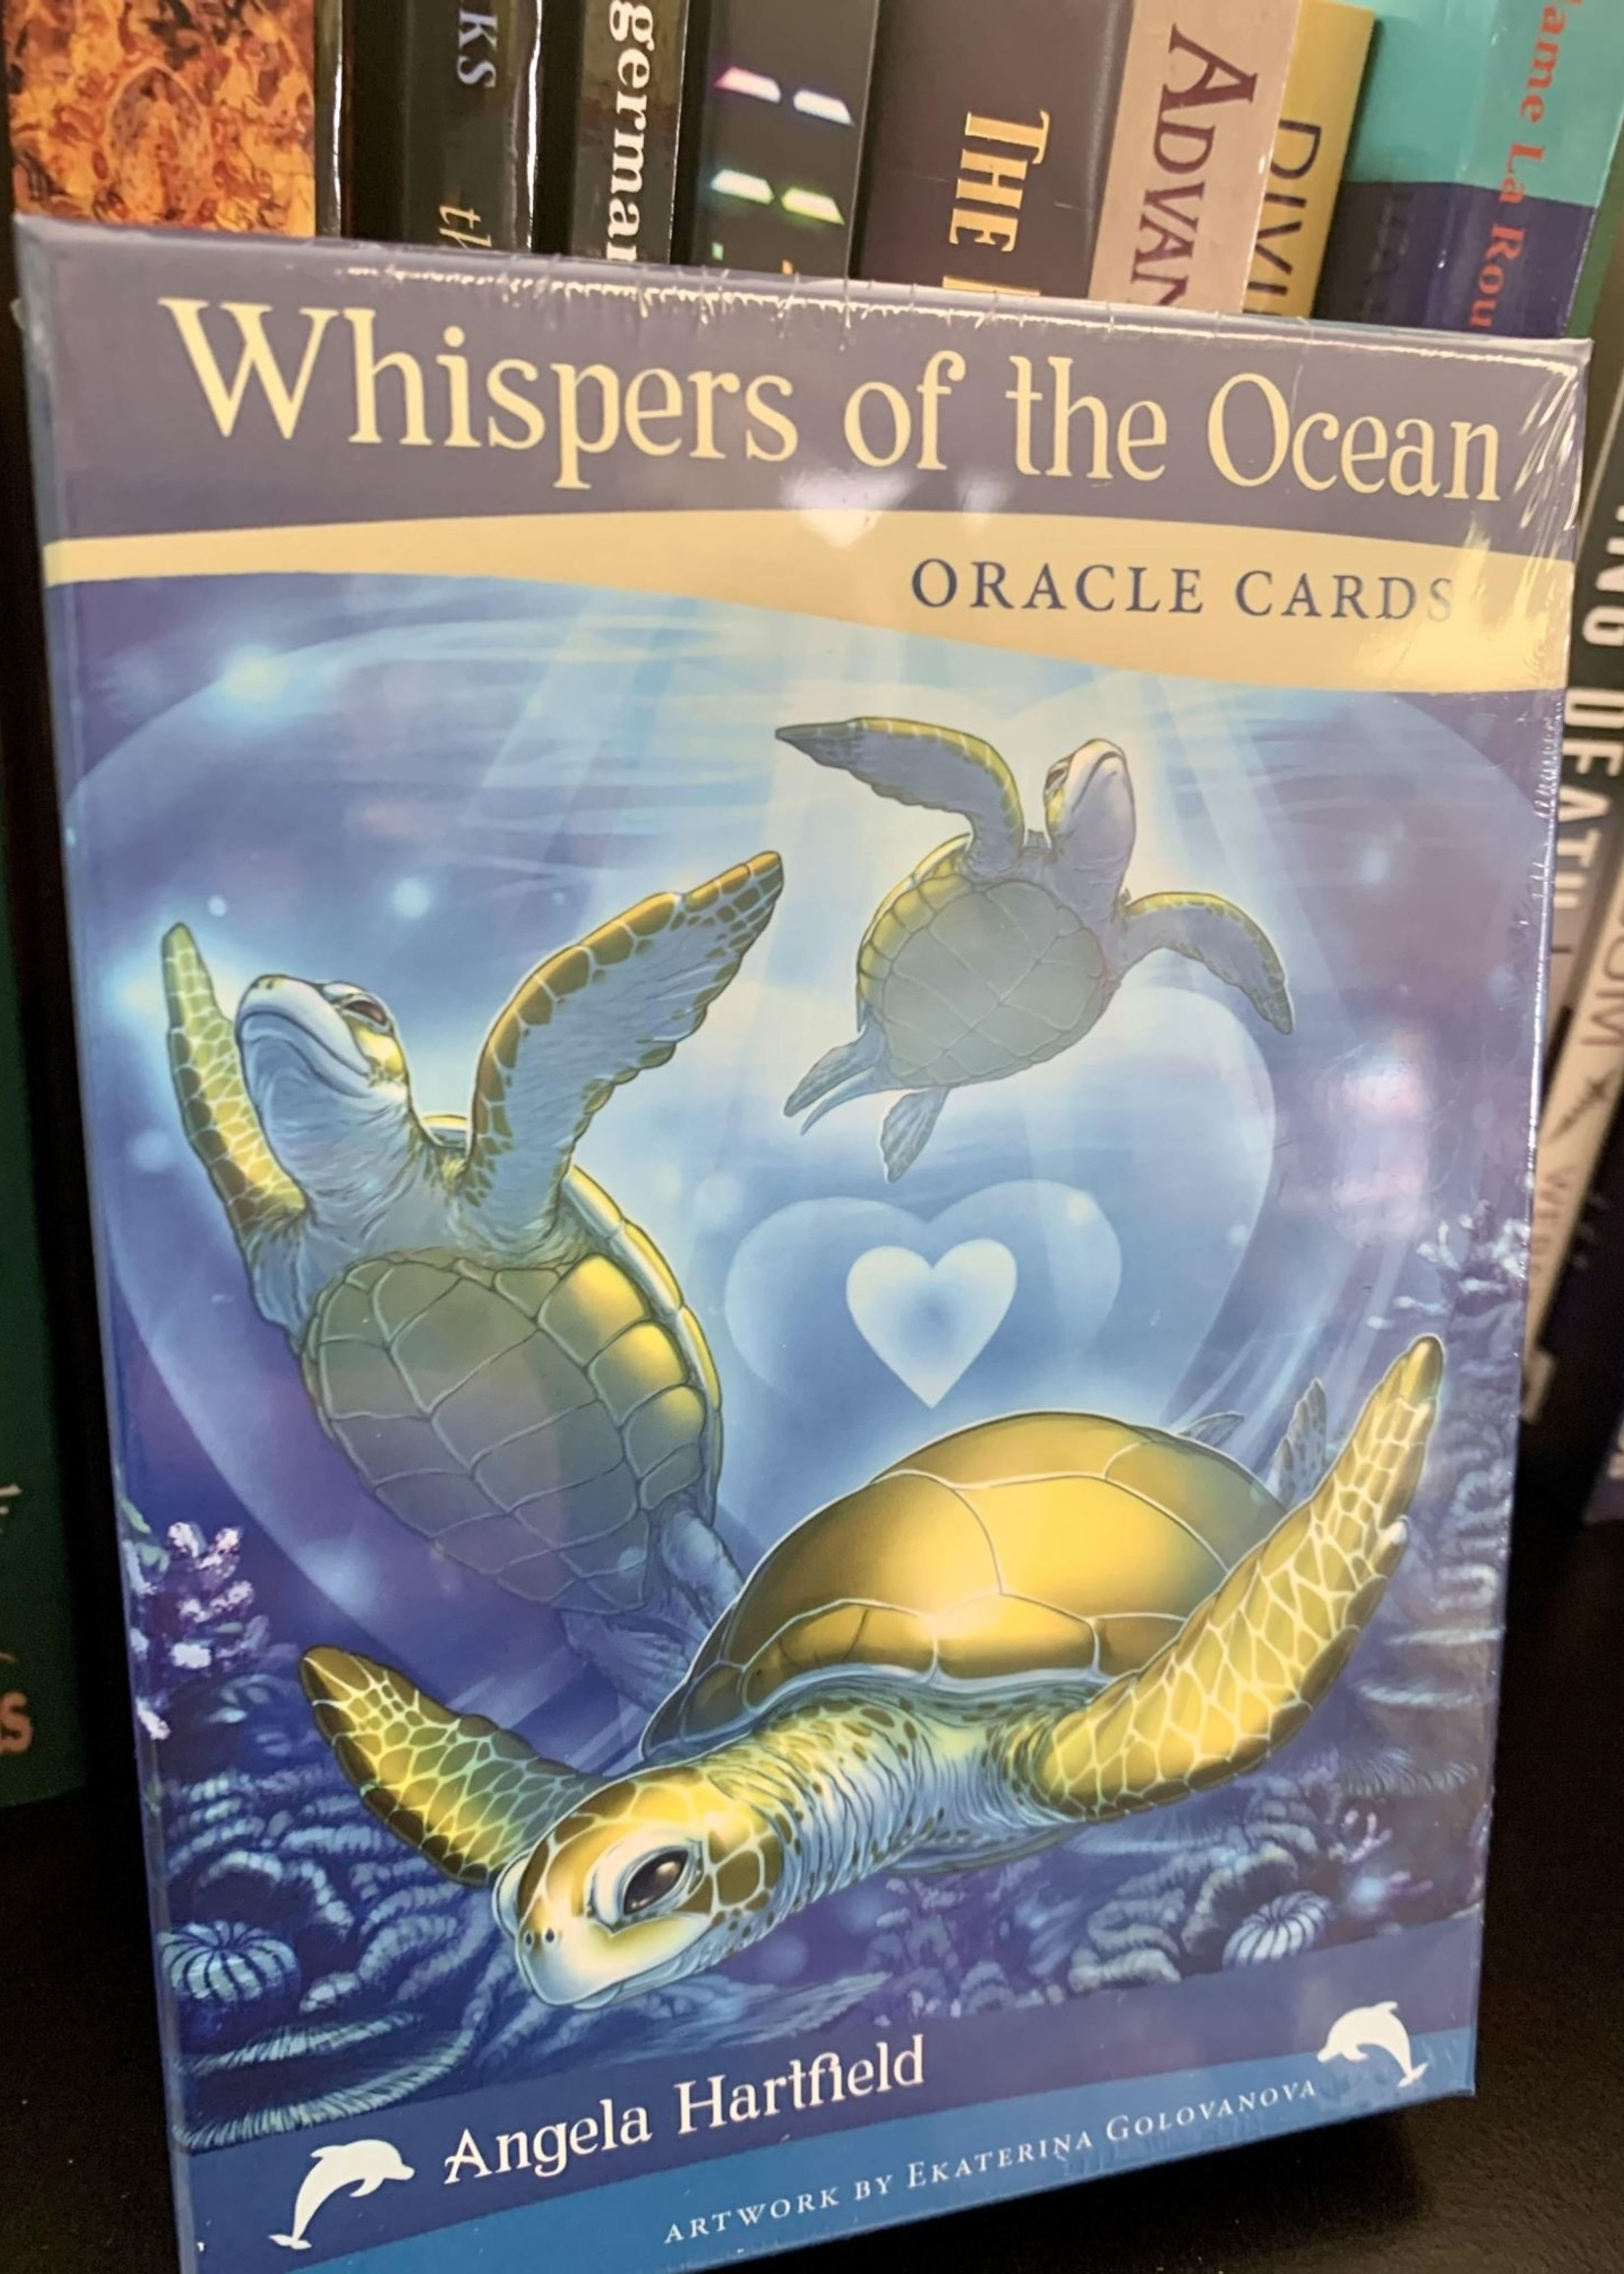 Whispers of the Ocean Oracle Cards - Whispers of the Ocean Oracle Cards